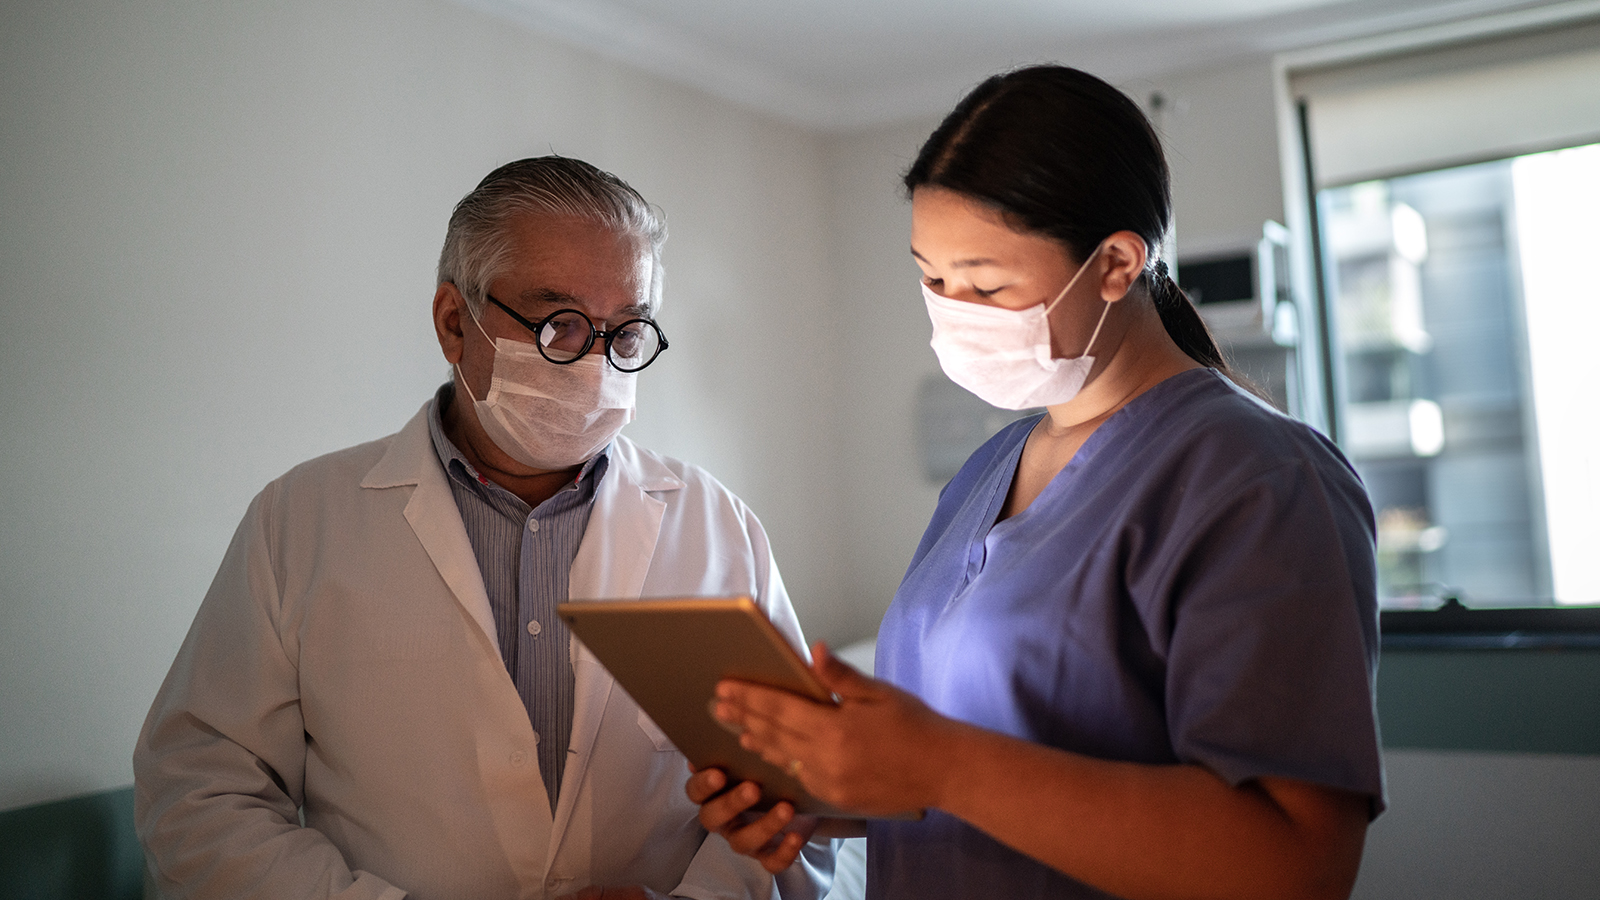 Healthcare workers talking and using digital tablet with face mask in hospital